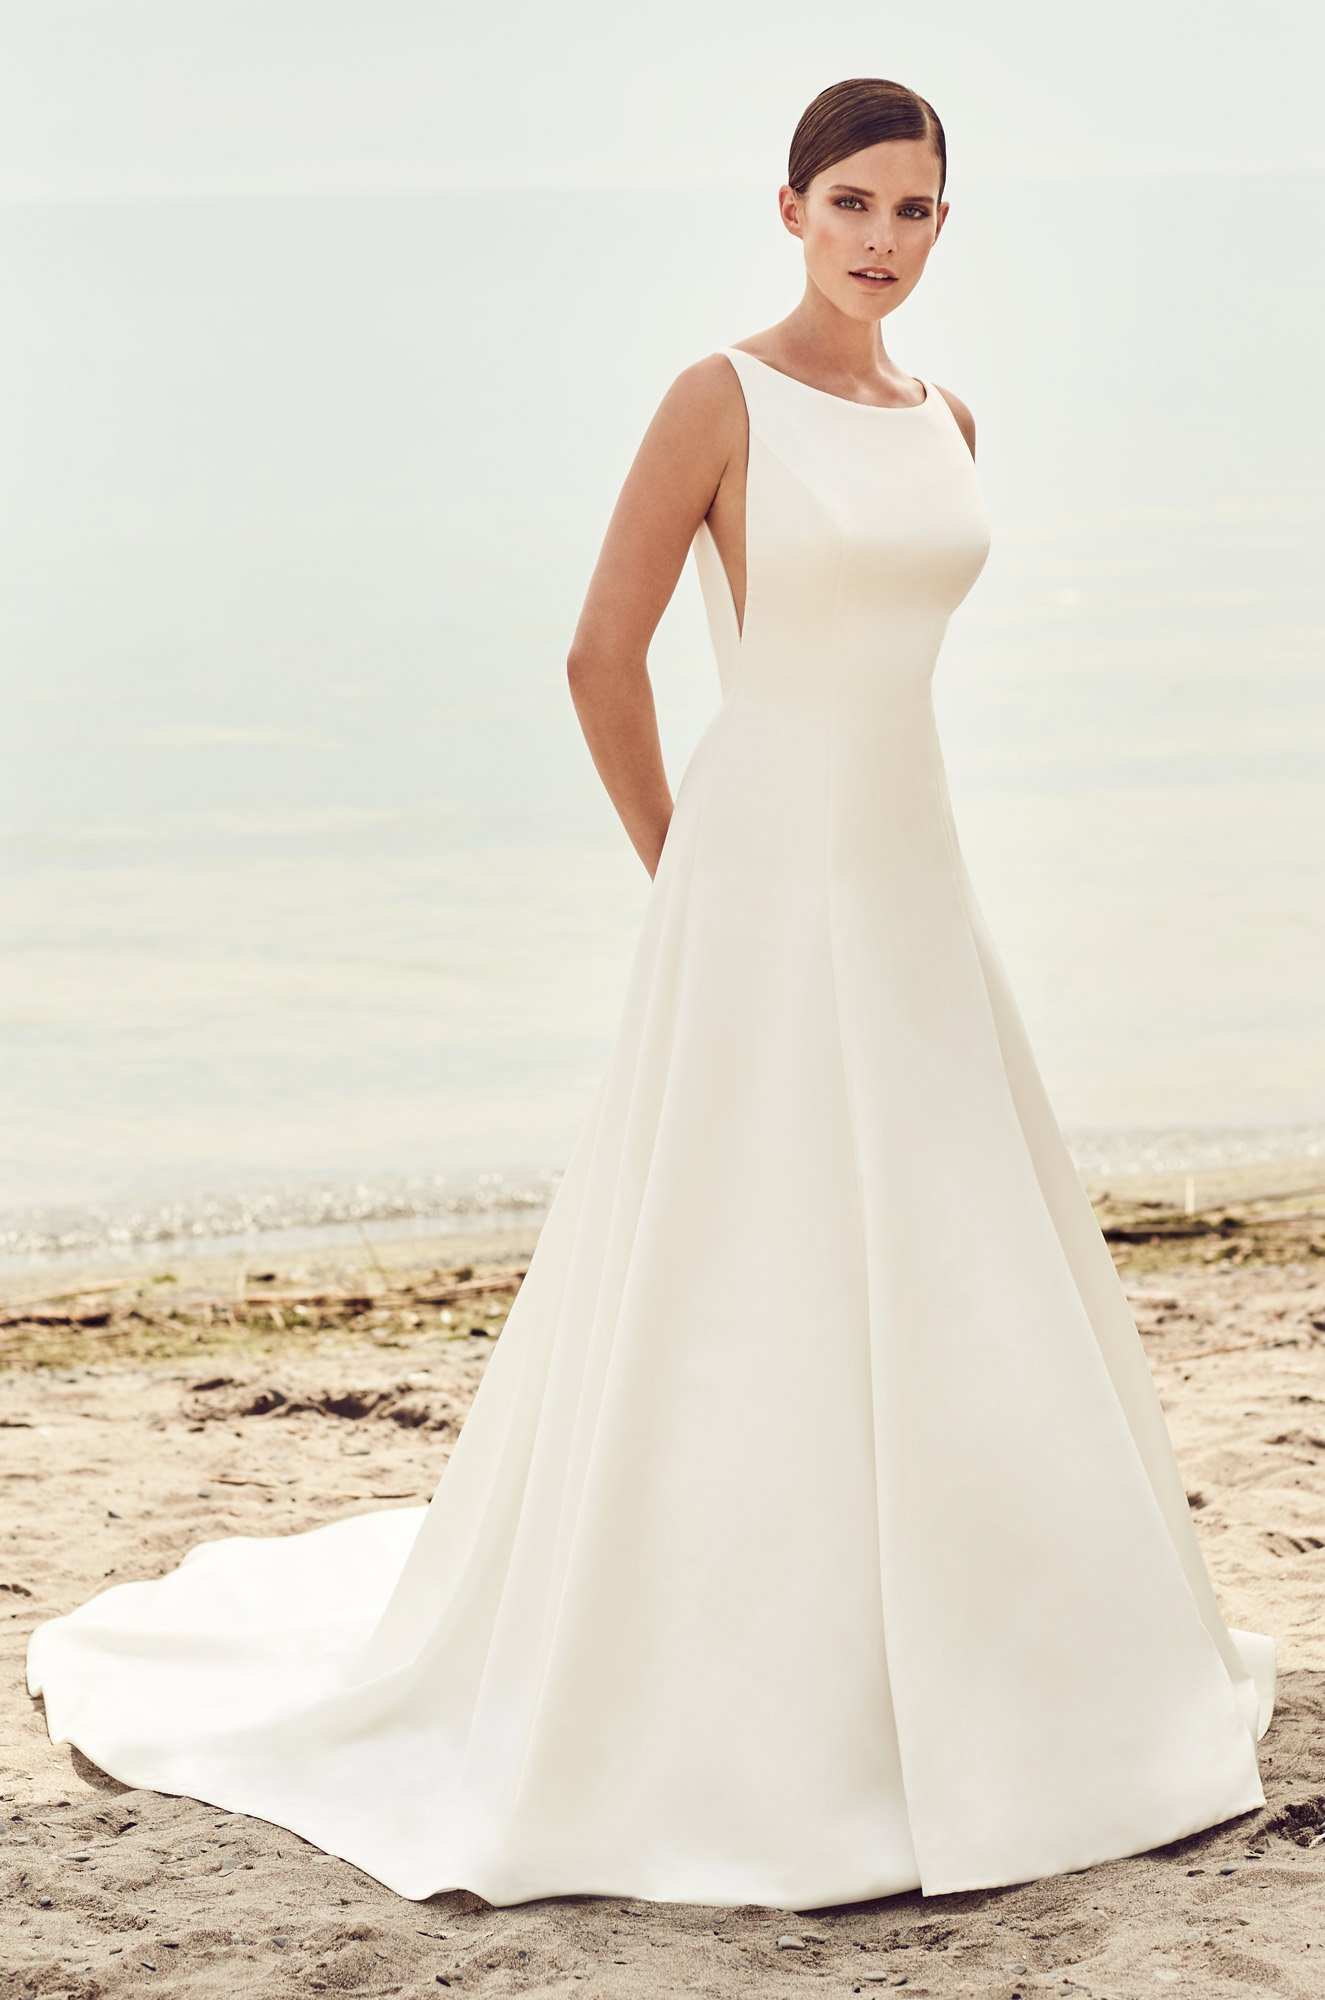 Sleek Modern Wedding Dress – Style #2115 | Mikaella Bridal